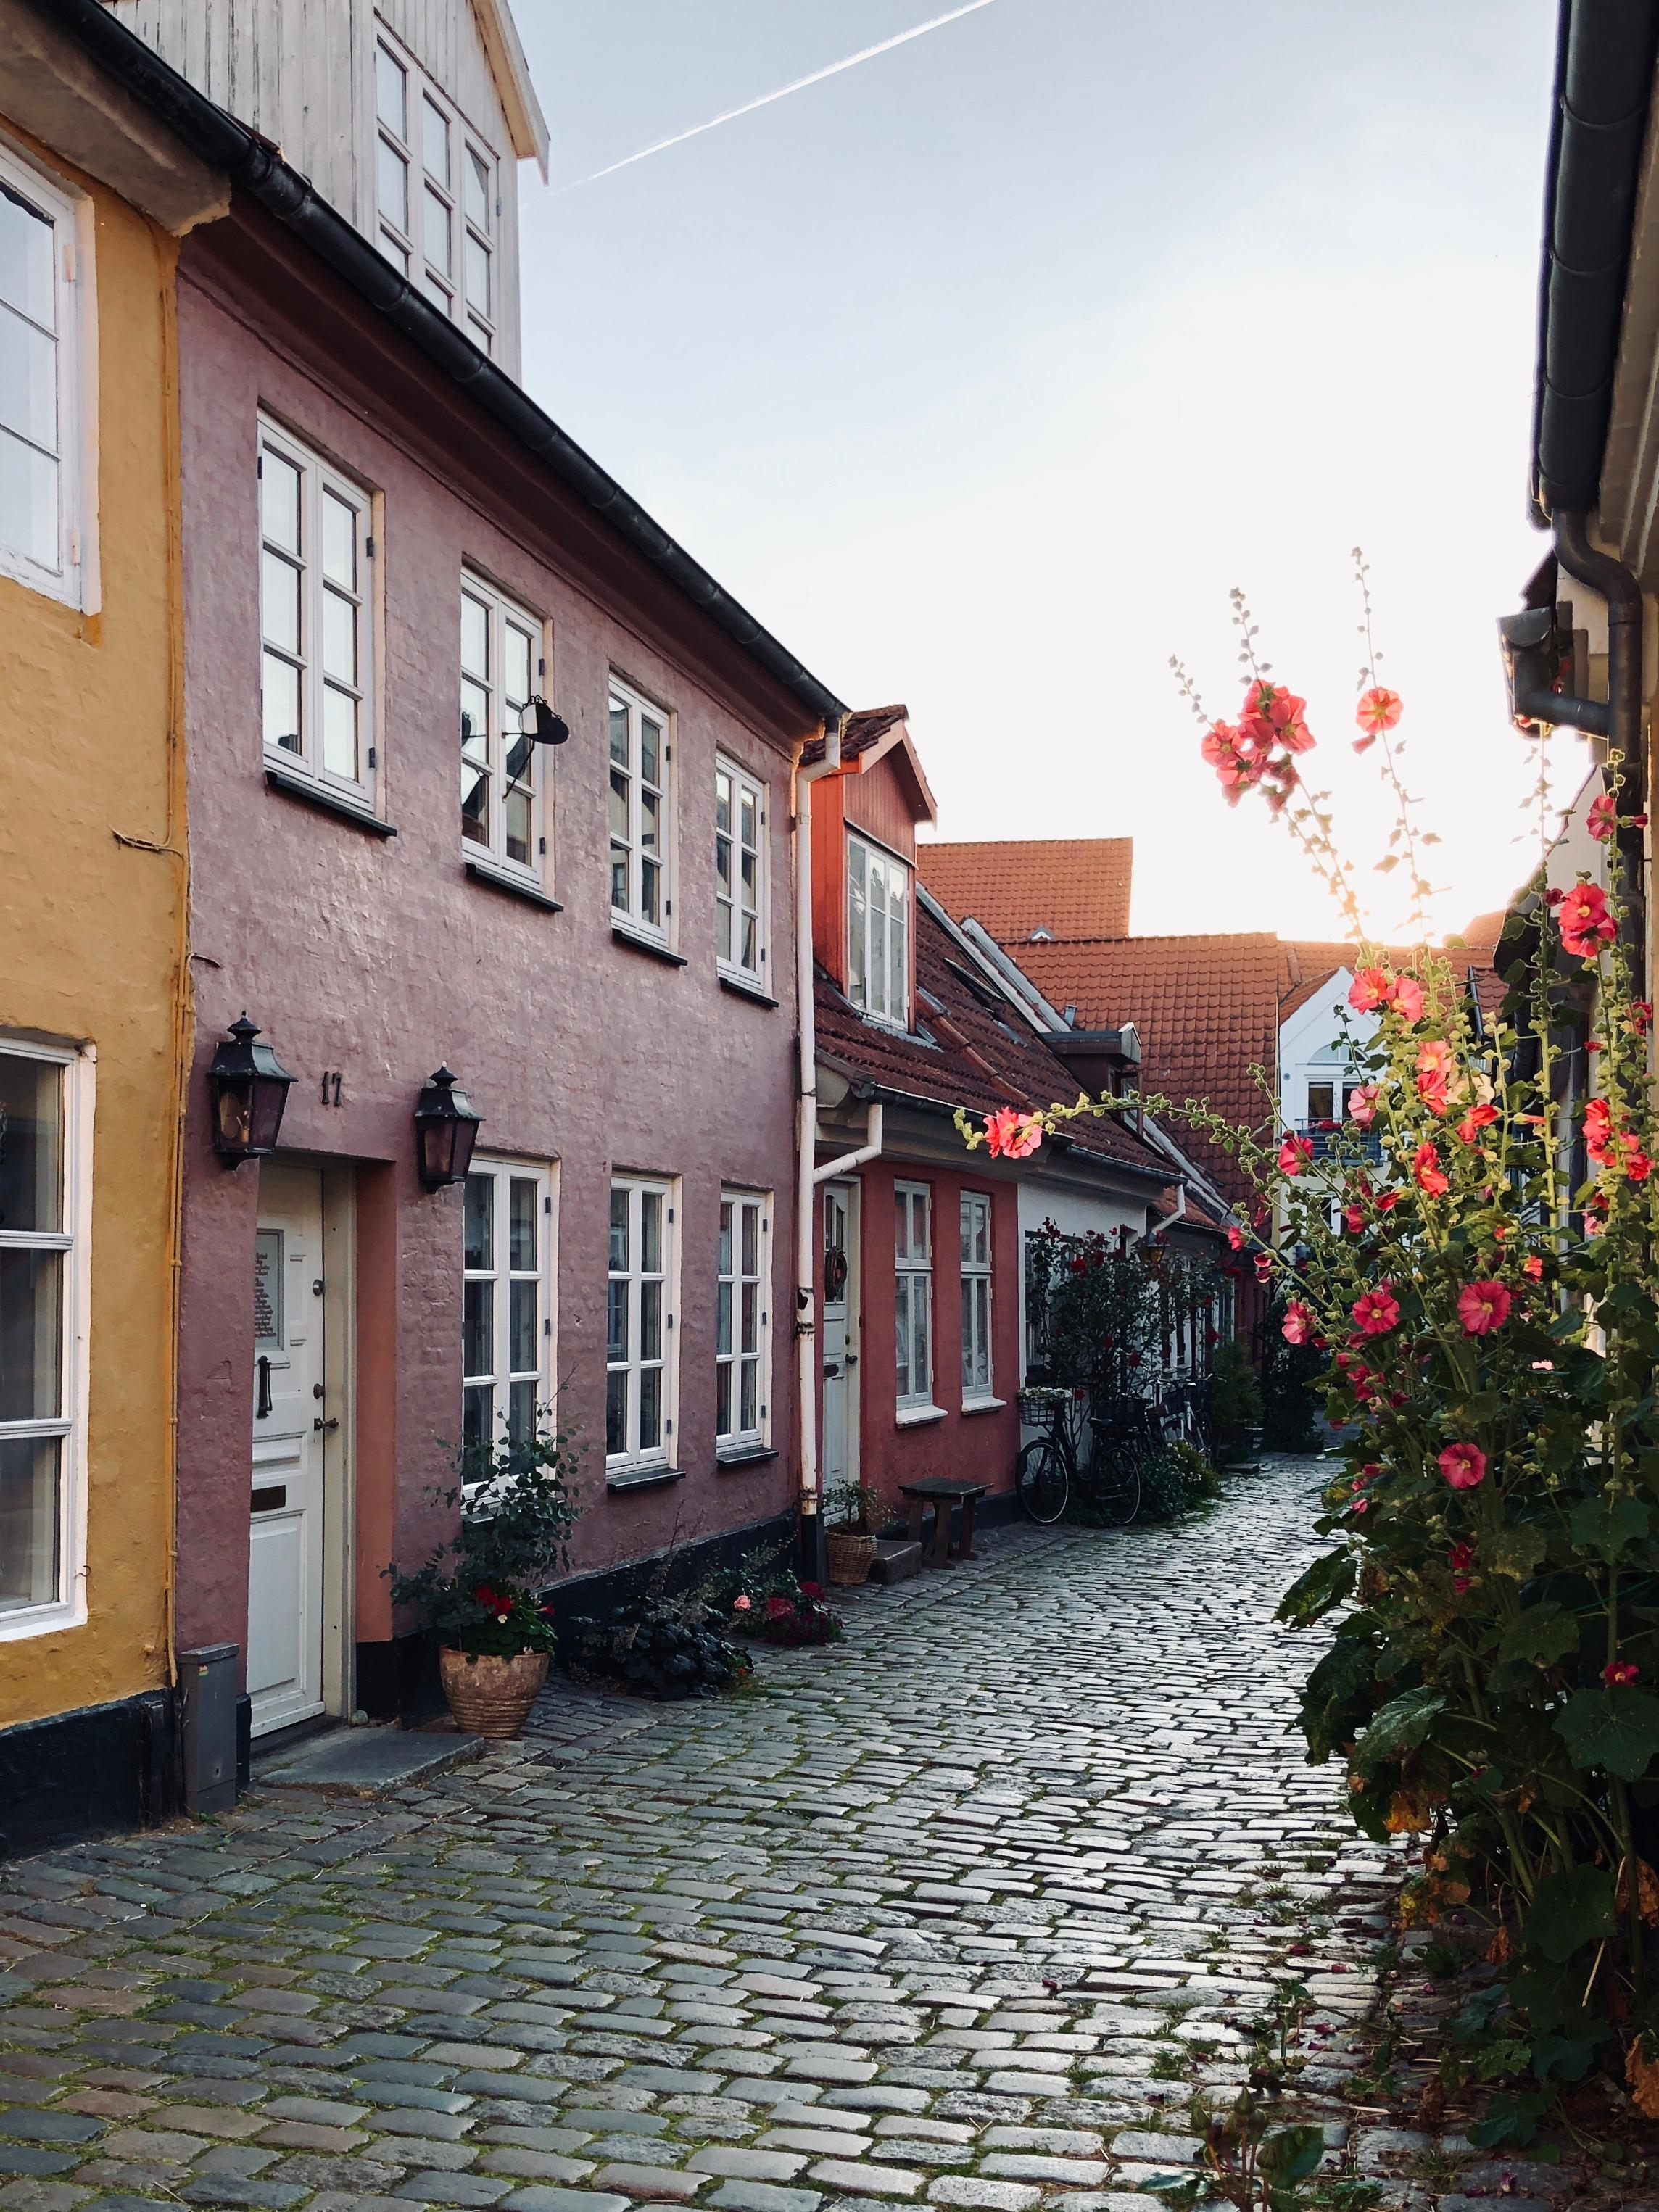 Beautiful tiny alley in aalborg eveninglight vistidenmark weekendtrip  9dd3696f 6832 46c9 9d03 16dbd3bd2042